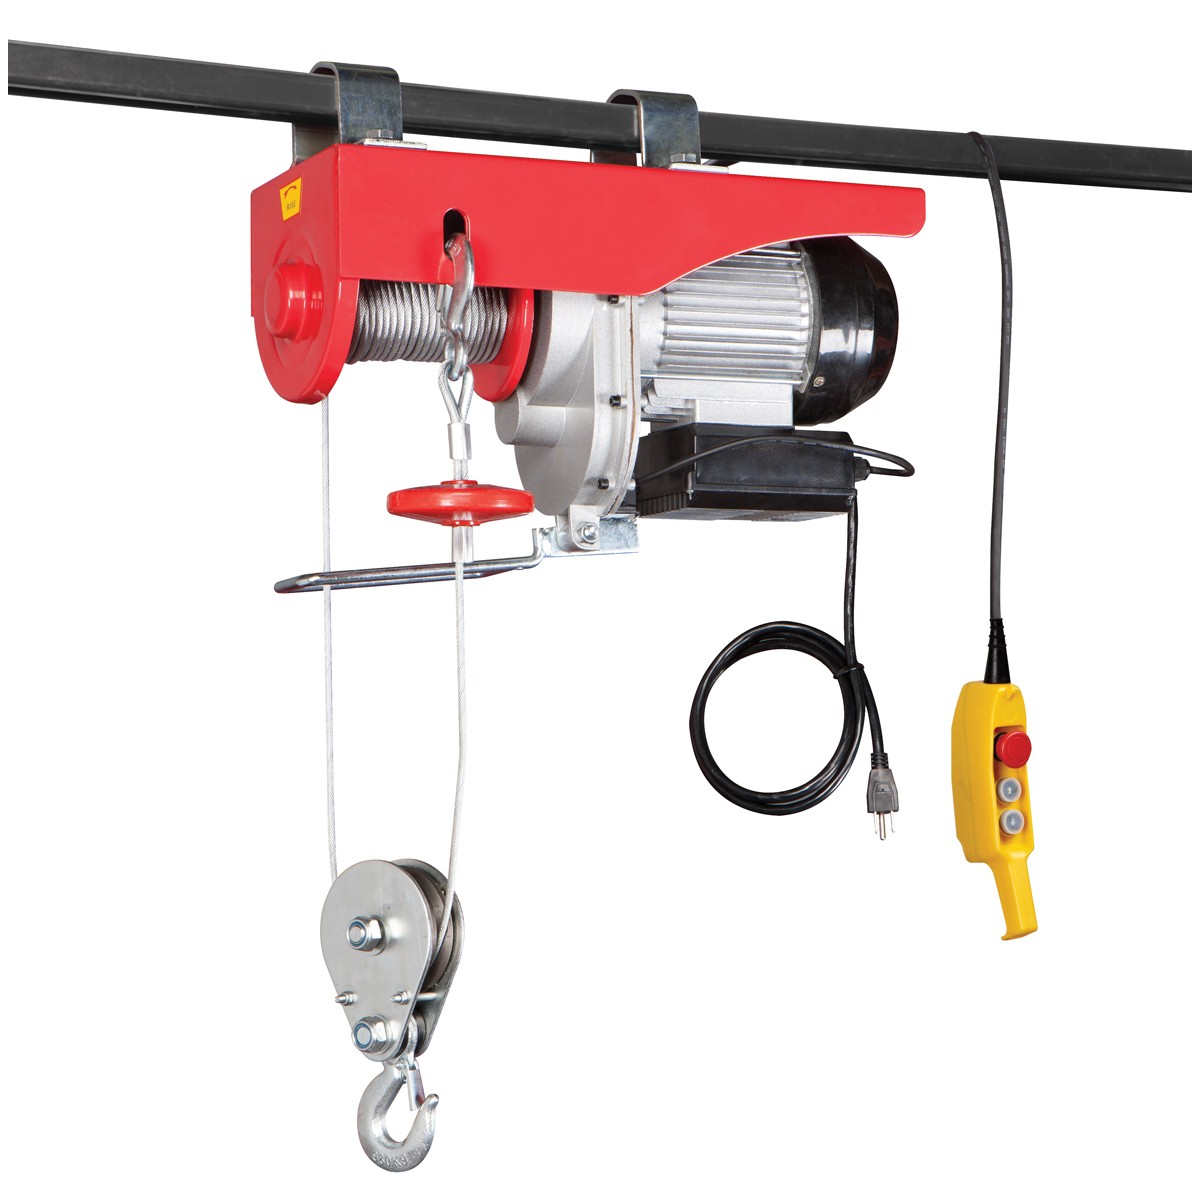 hight resolution of china lodestar hoists china lodestar hoists manufacturers and suppliers on alibaba com